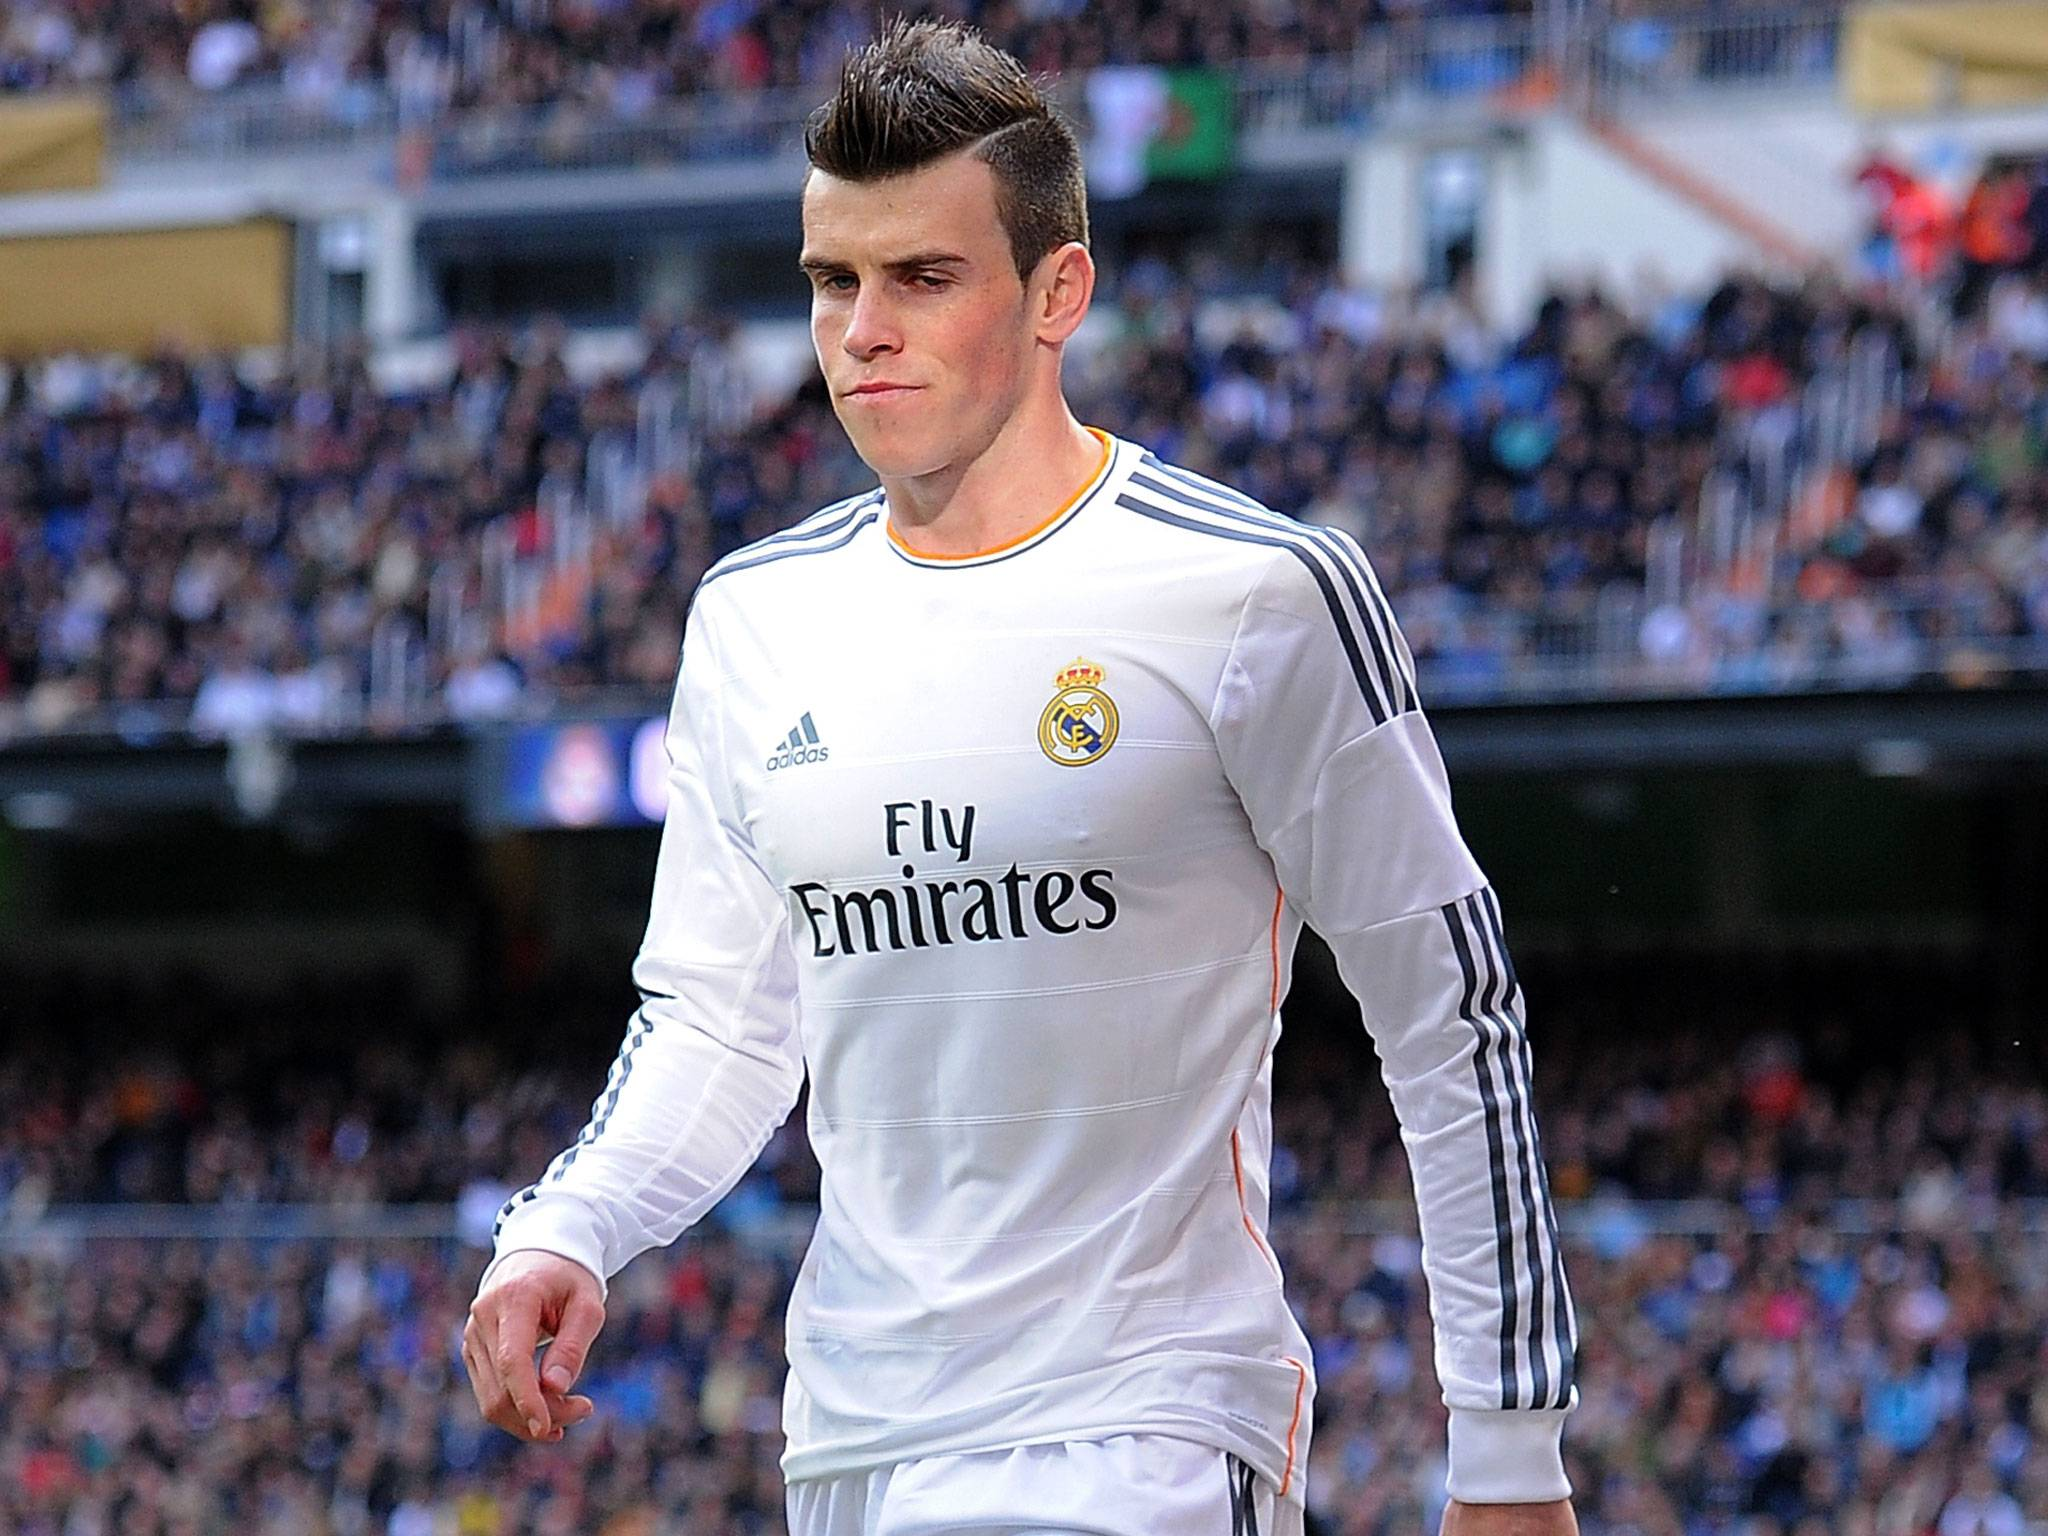 Gareth Bale HD Images - Free download latest Gareth Bale HD Images ...